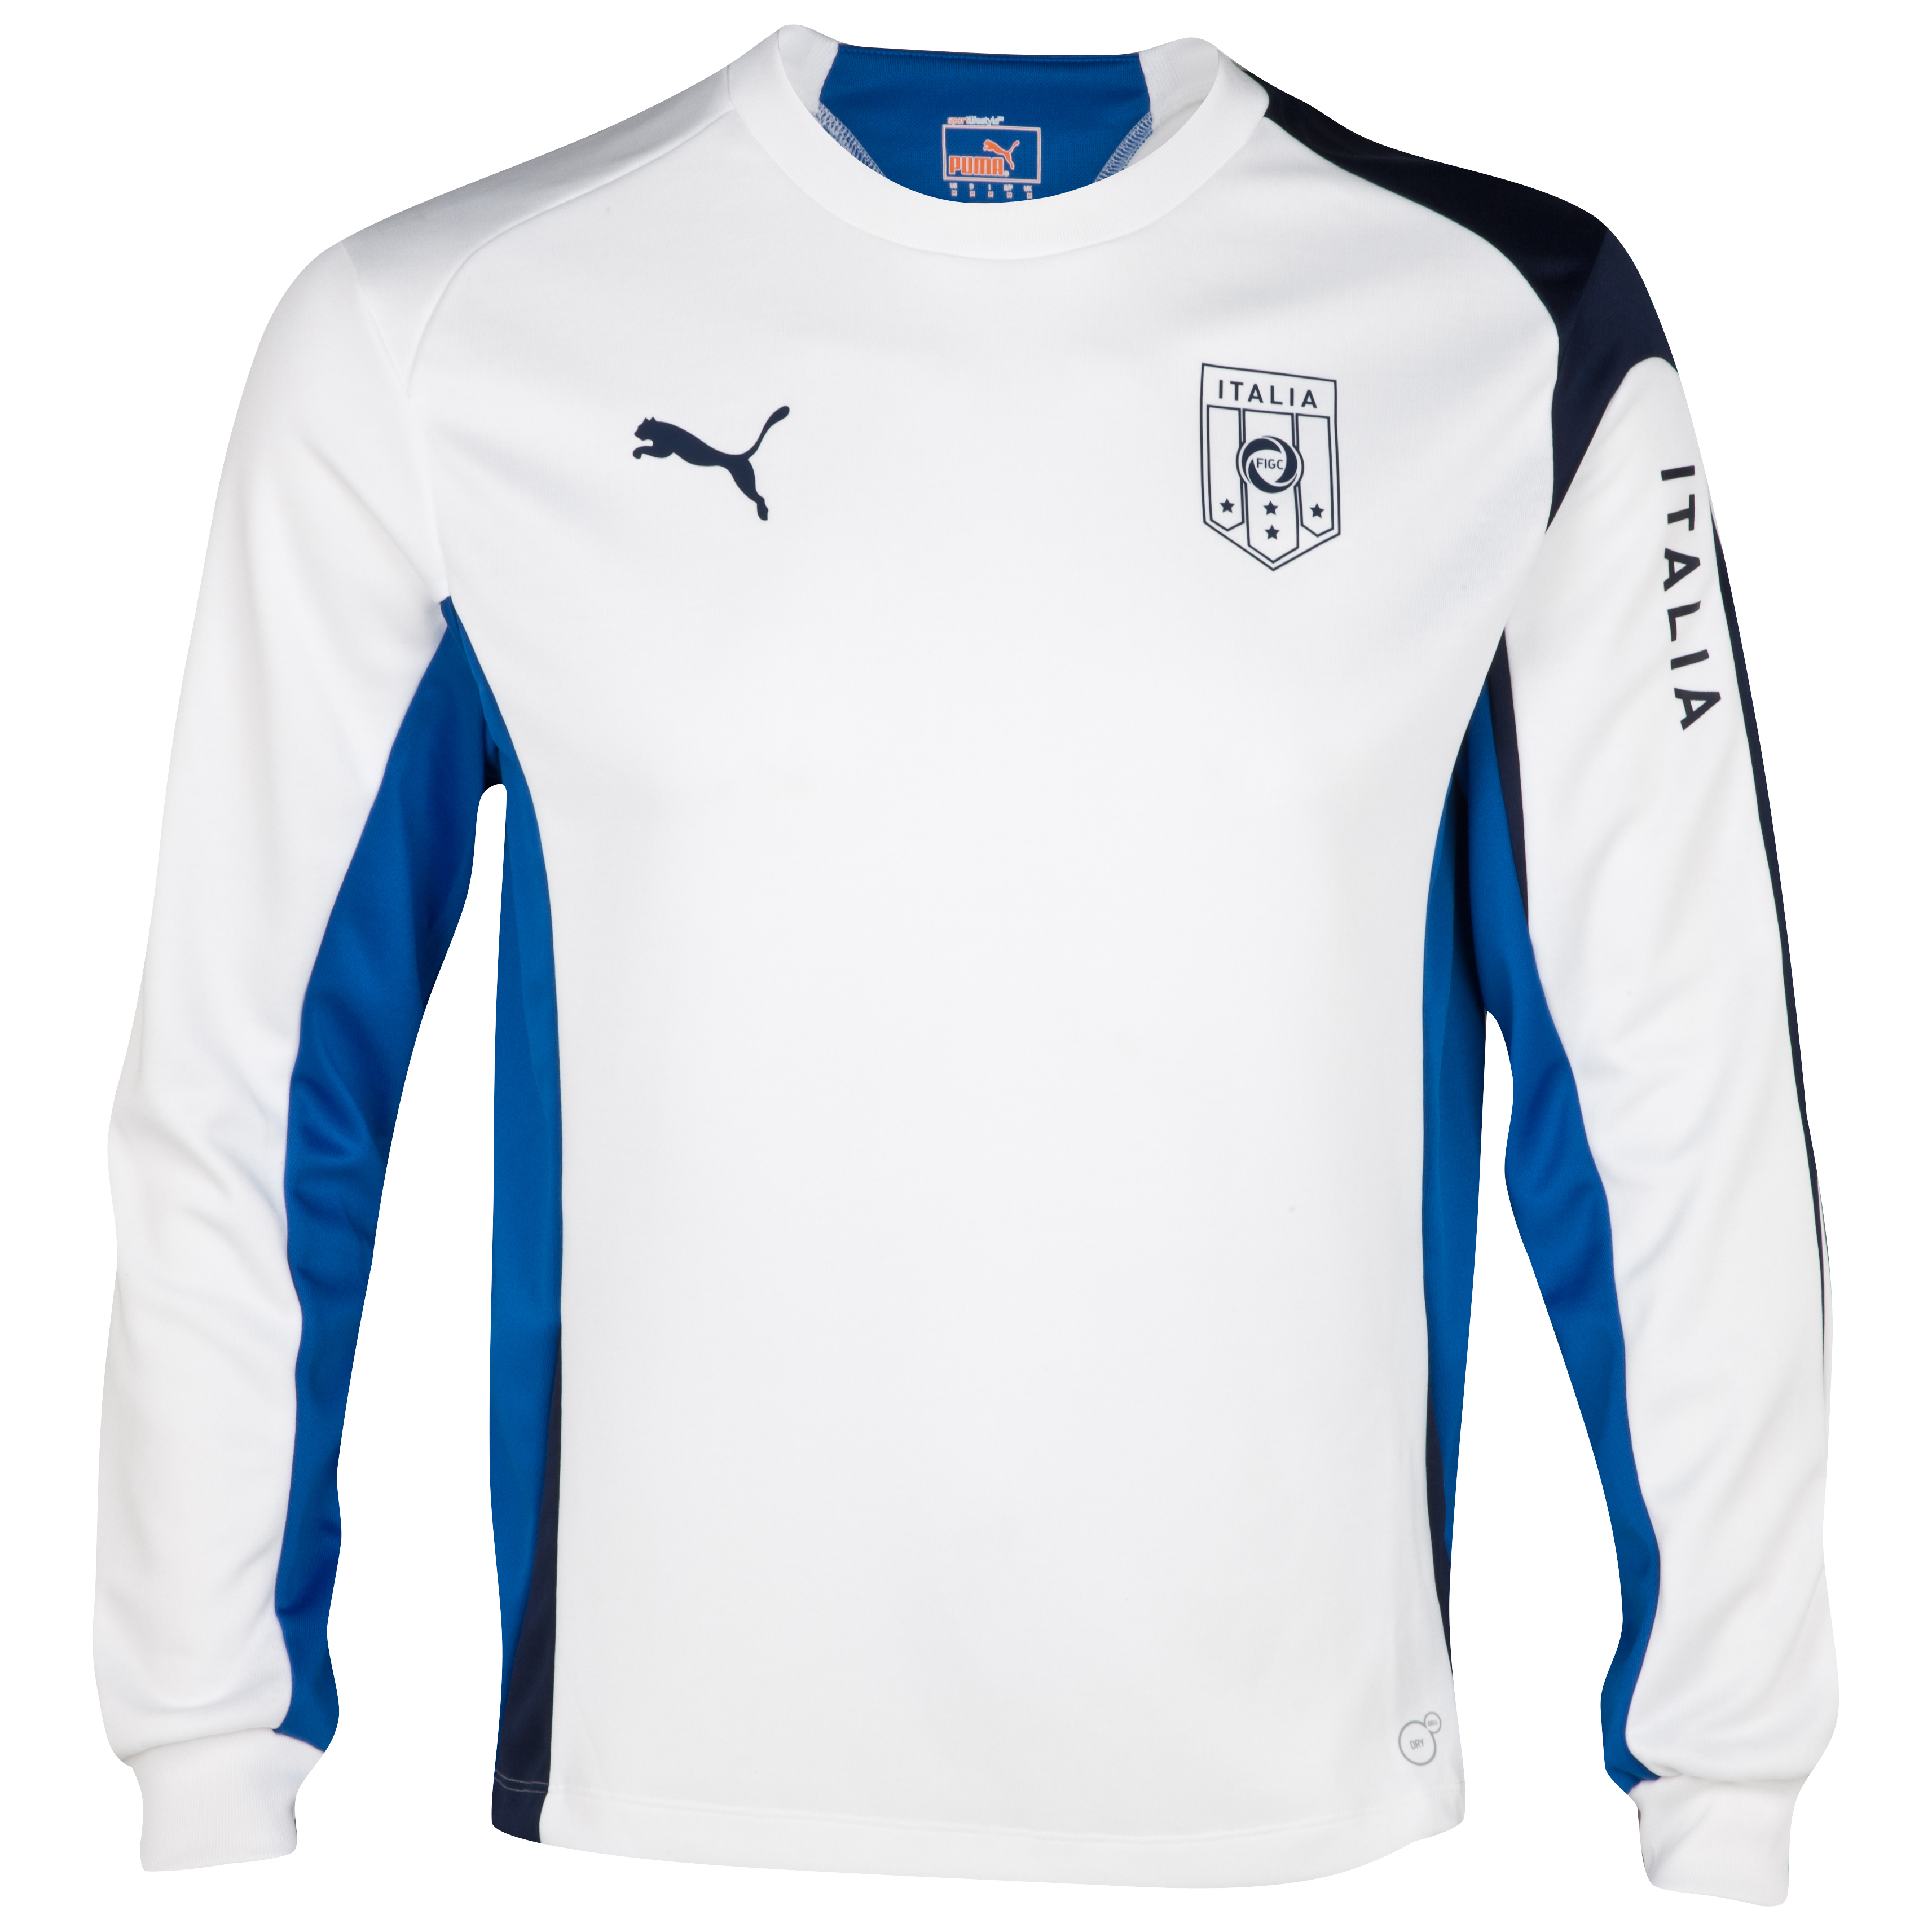 Puma Italy Training Sweatshirt - Navy/White